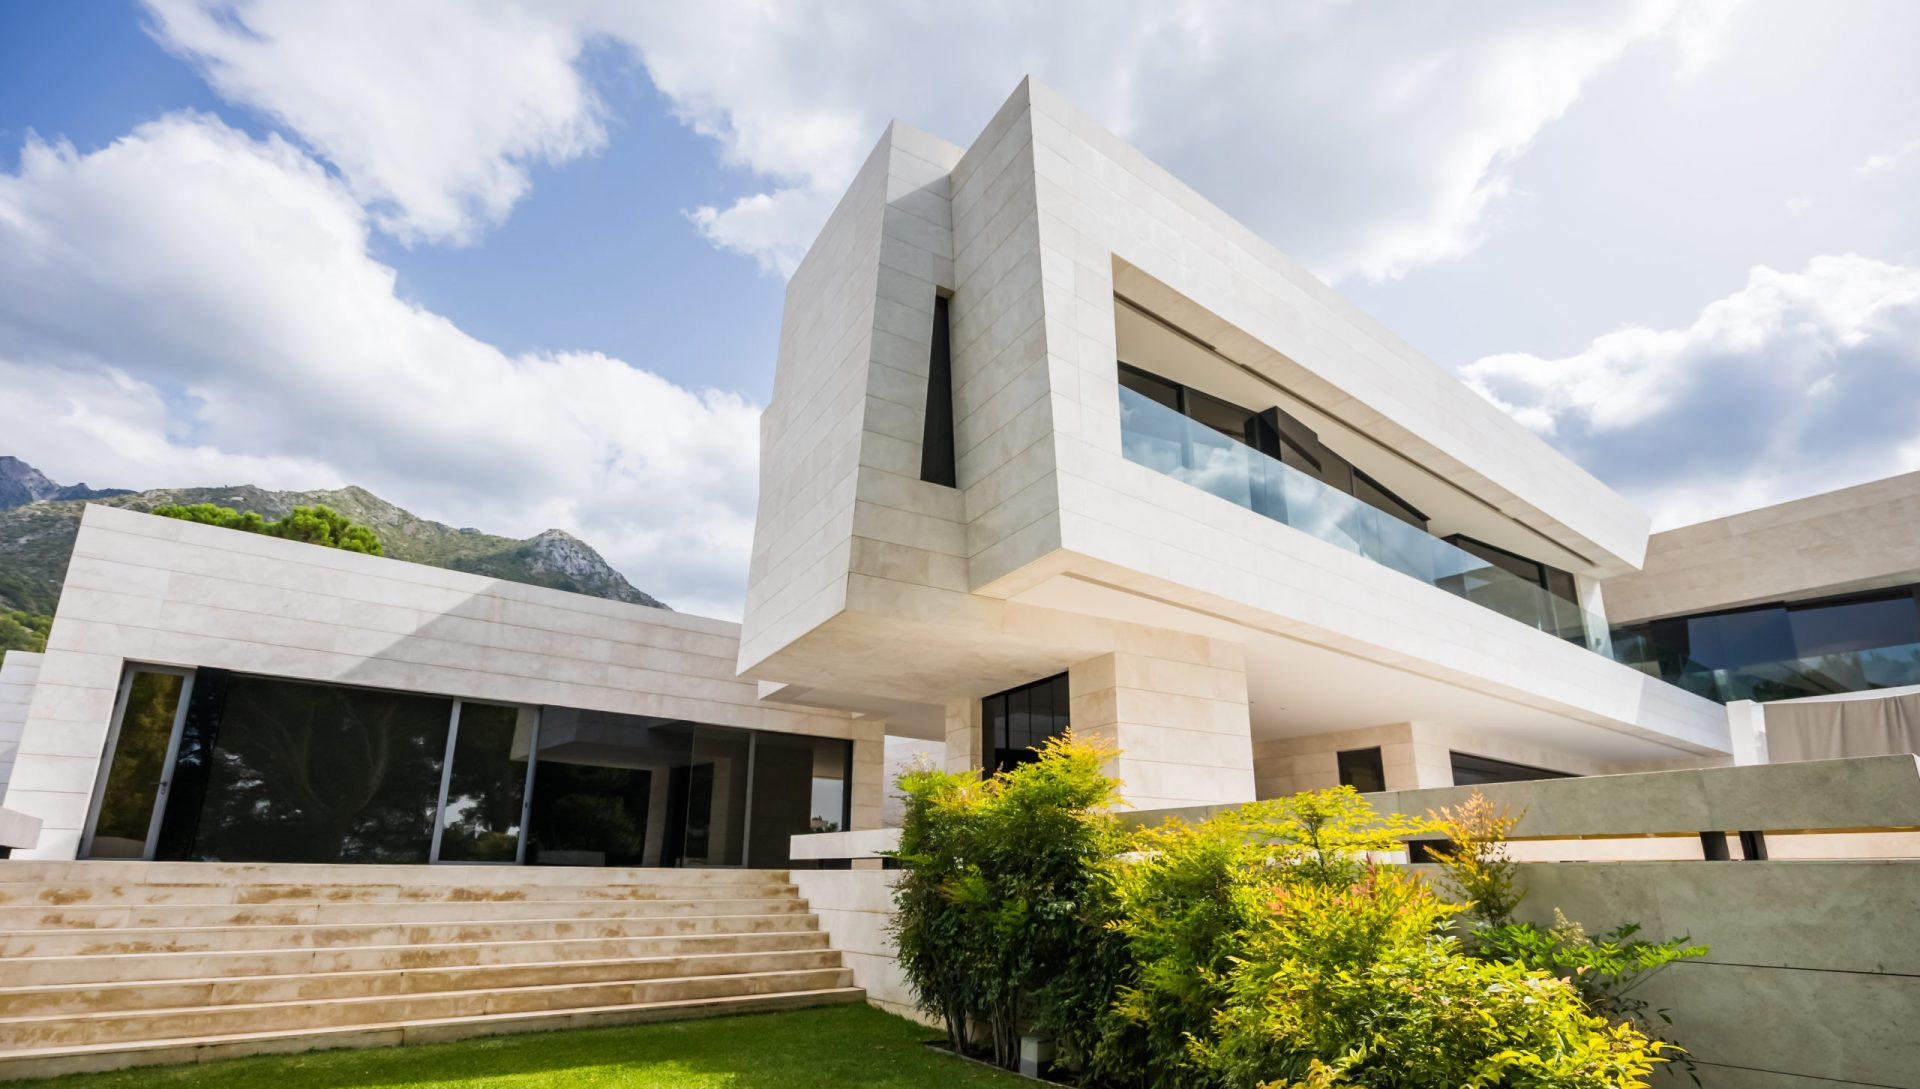 Top 5 Best Architects in Marbella